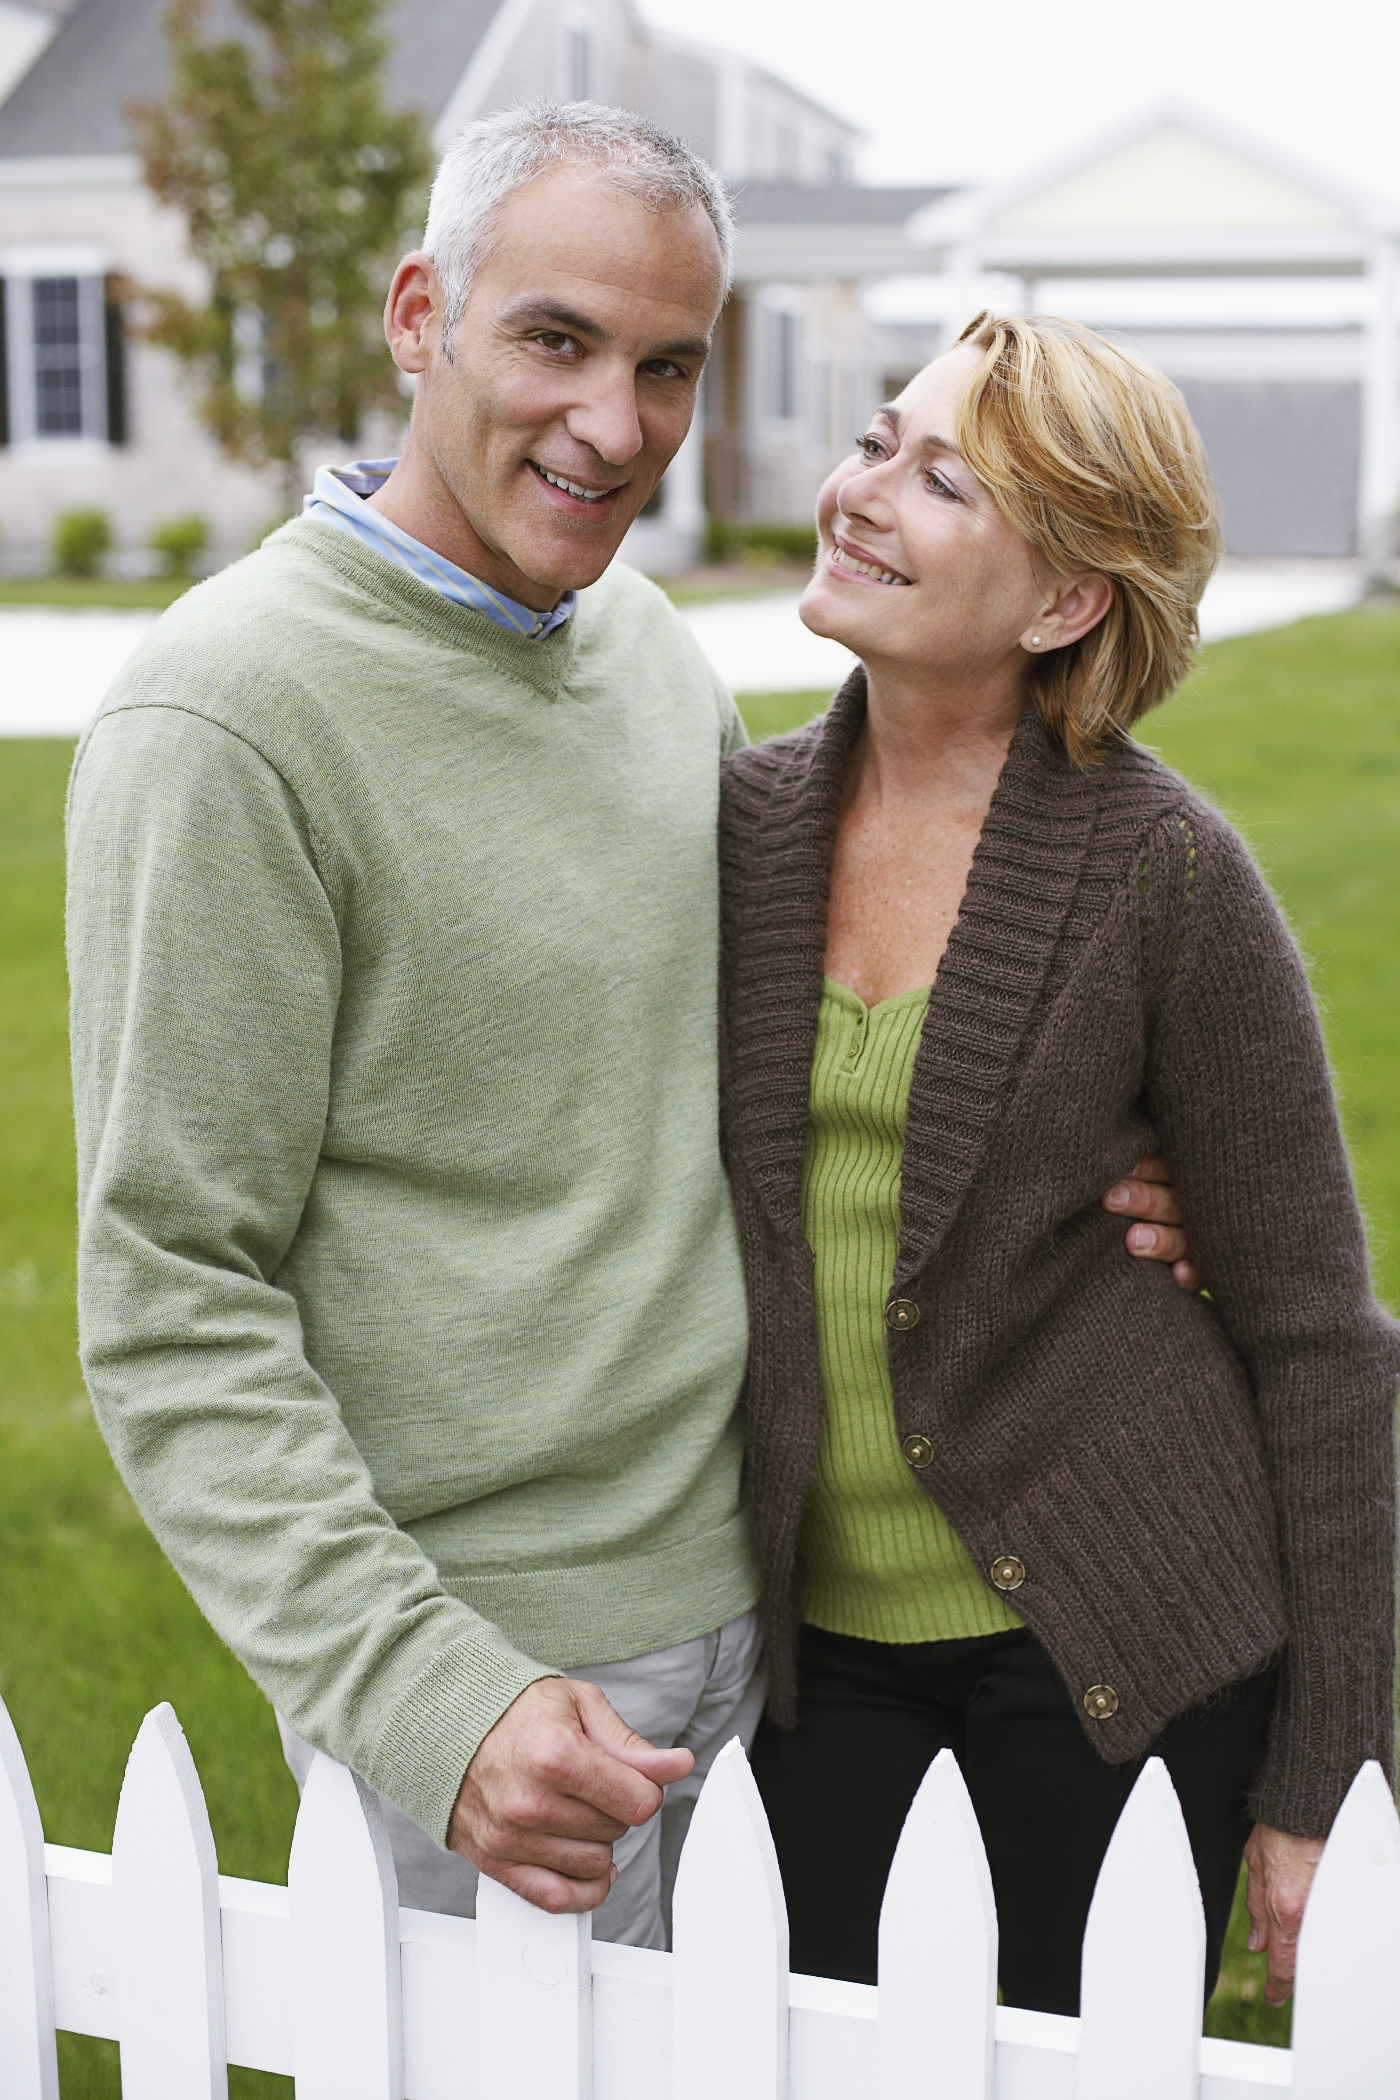 Dr. Sapp can provide you with a happy, healthy smile.